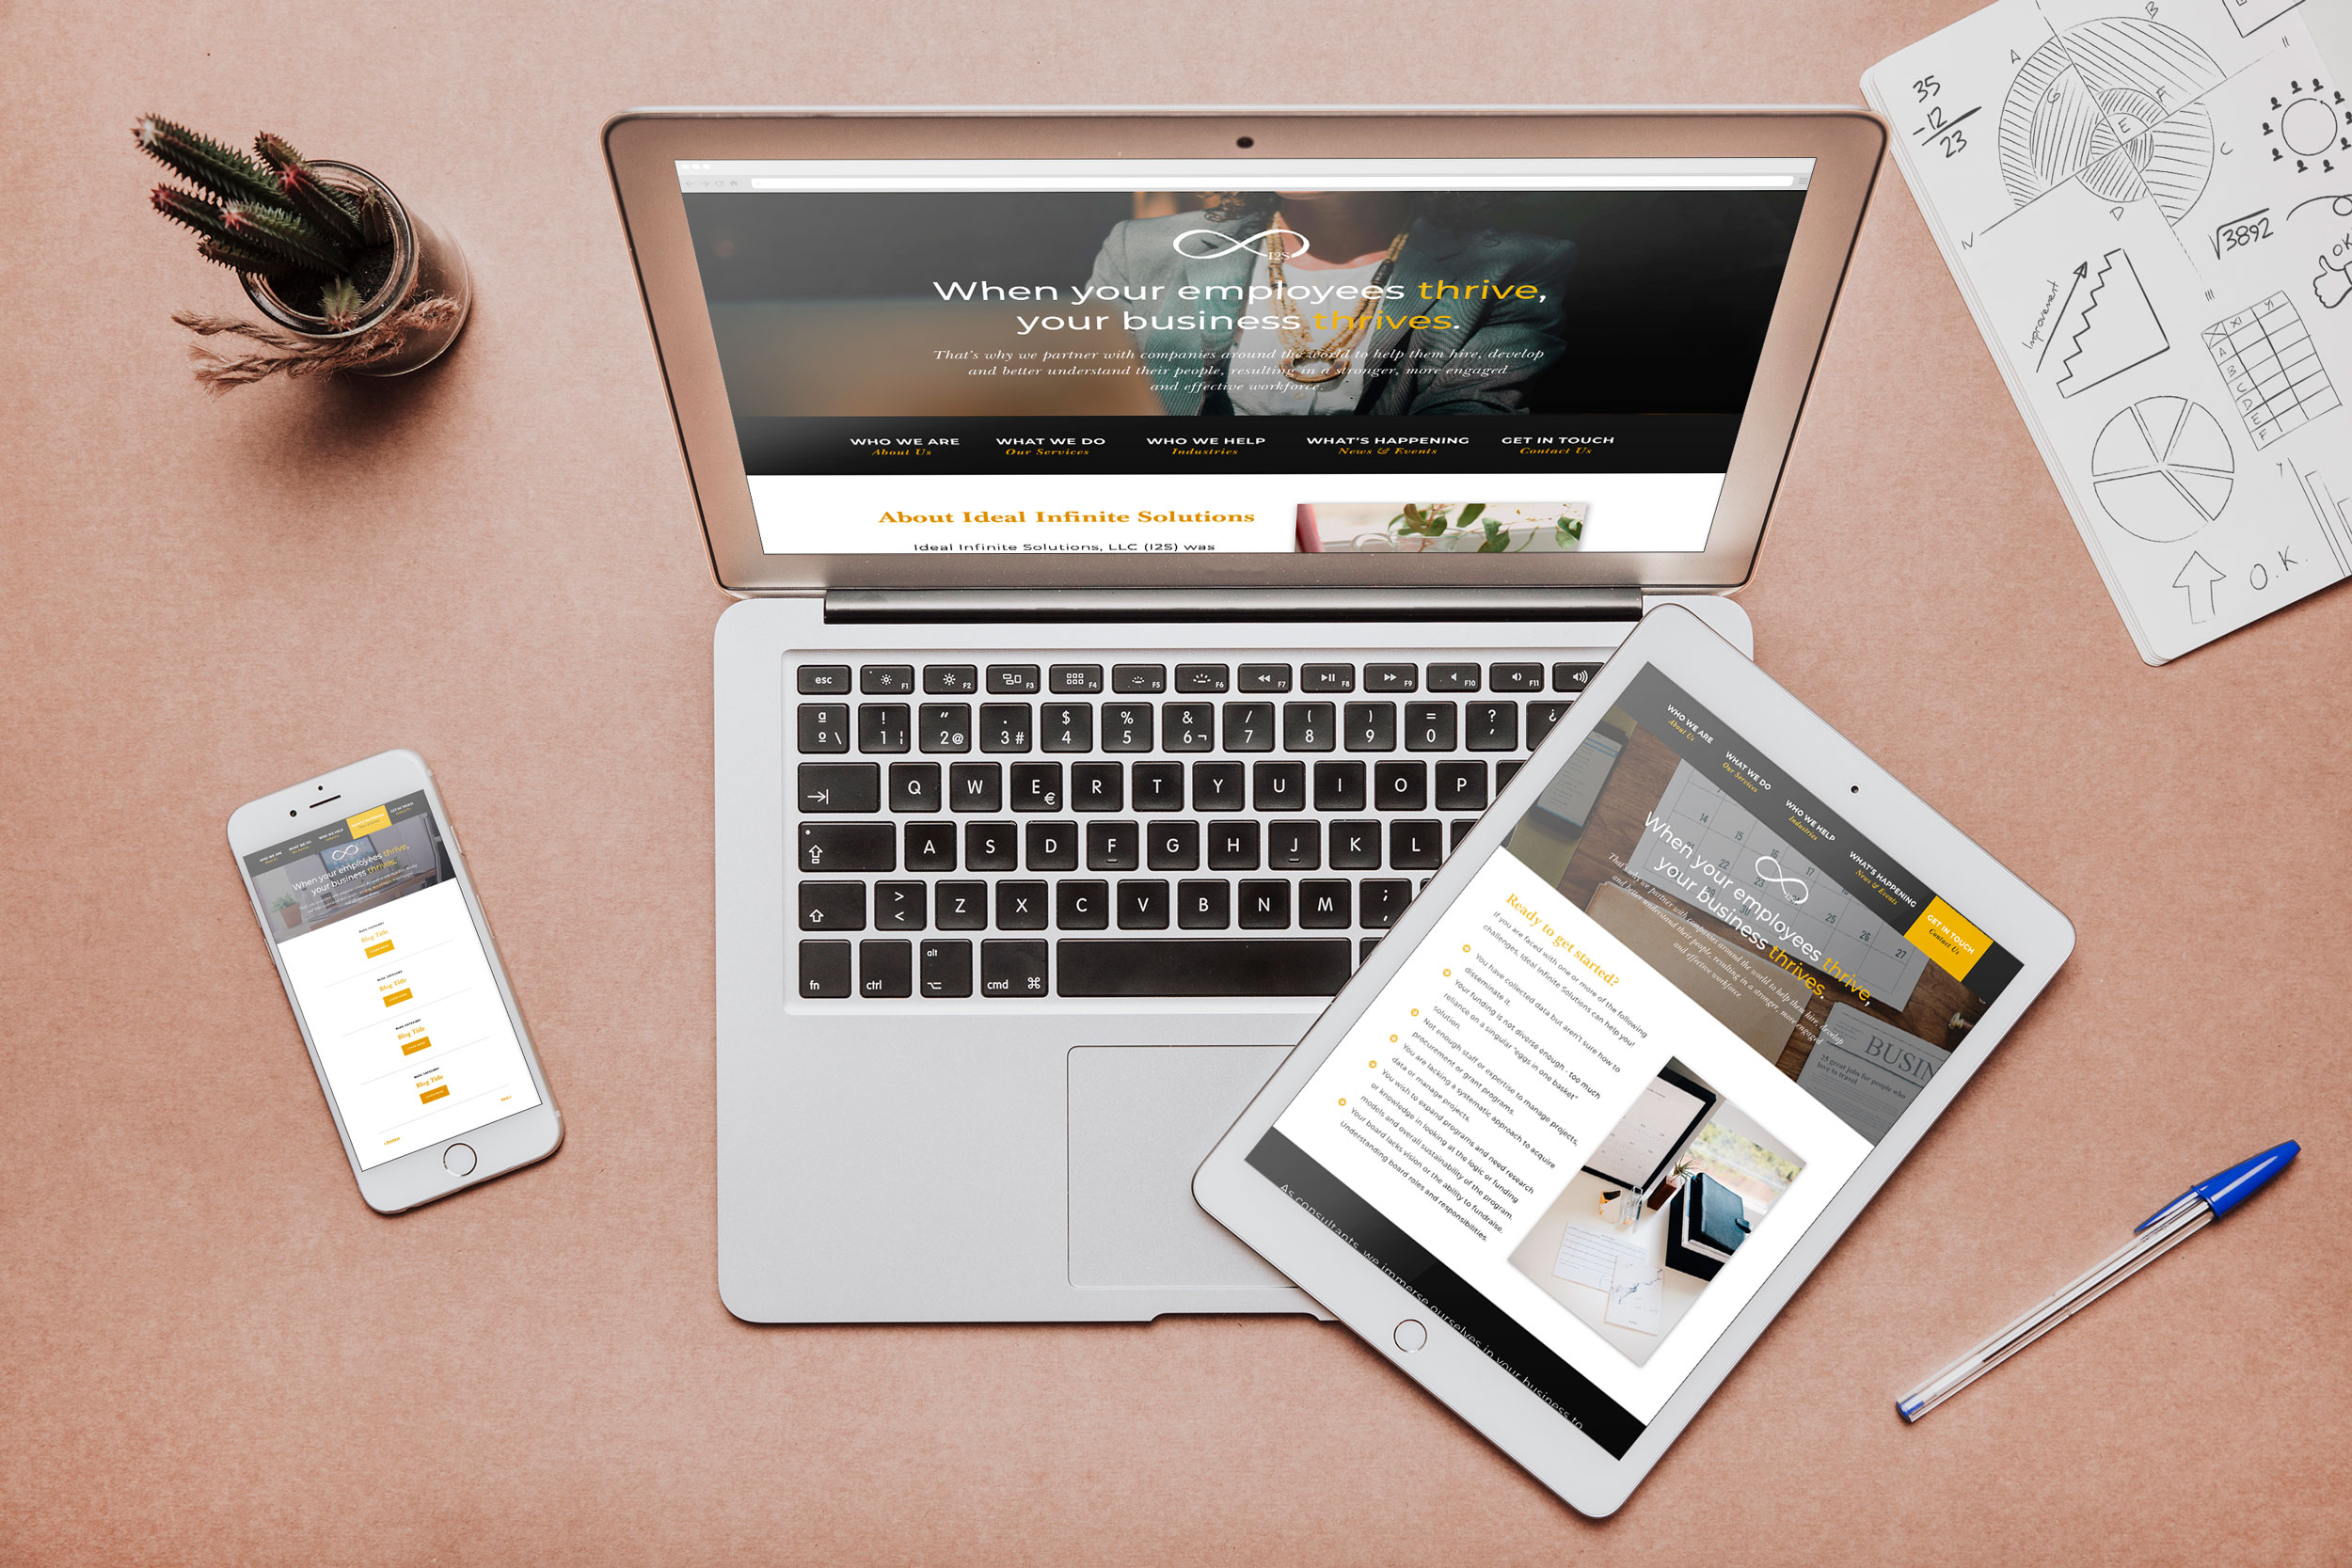 Ideal Infinite Solutions Site Design - Homepage on Macbook, iPad, and iPhone